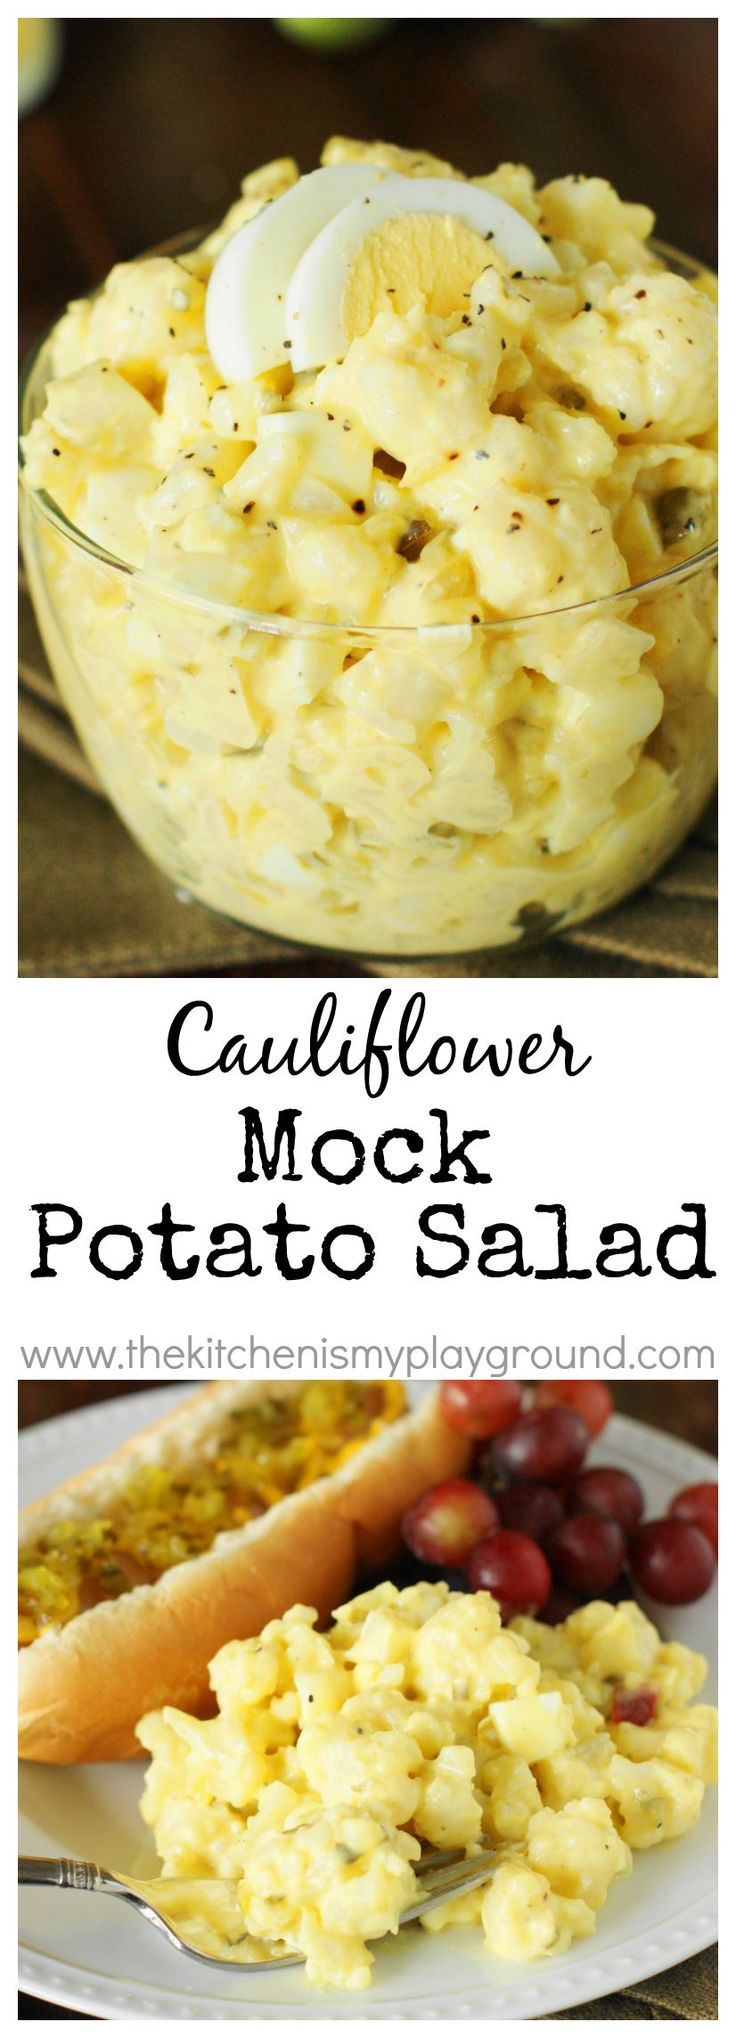 Cauliflower Mock Potato Salad ~ a full-of-flavor lower-carb version of our beloved potato salad!   #cauliflower #lowcarb #potatosalad www.thekitchenismyplayground.com